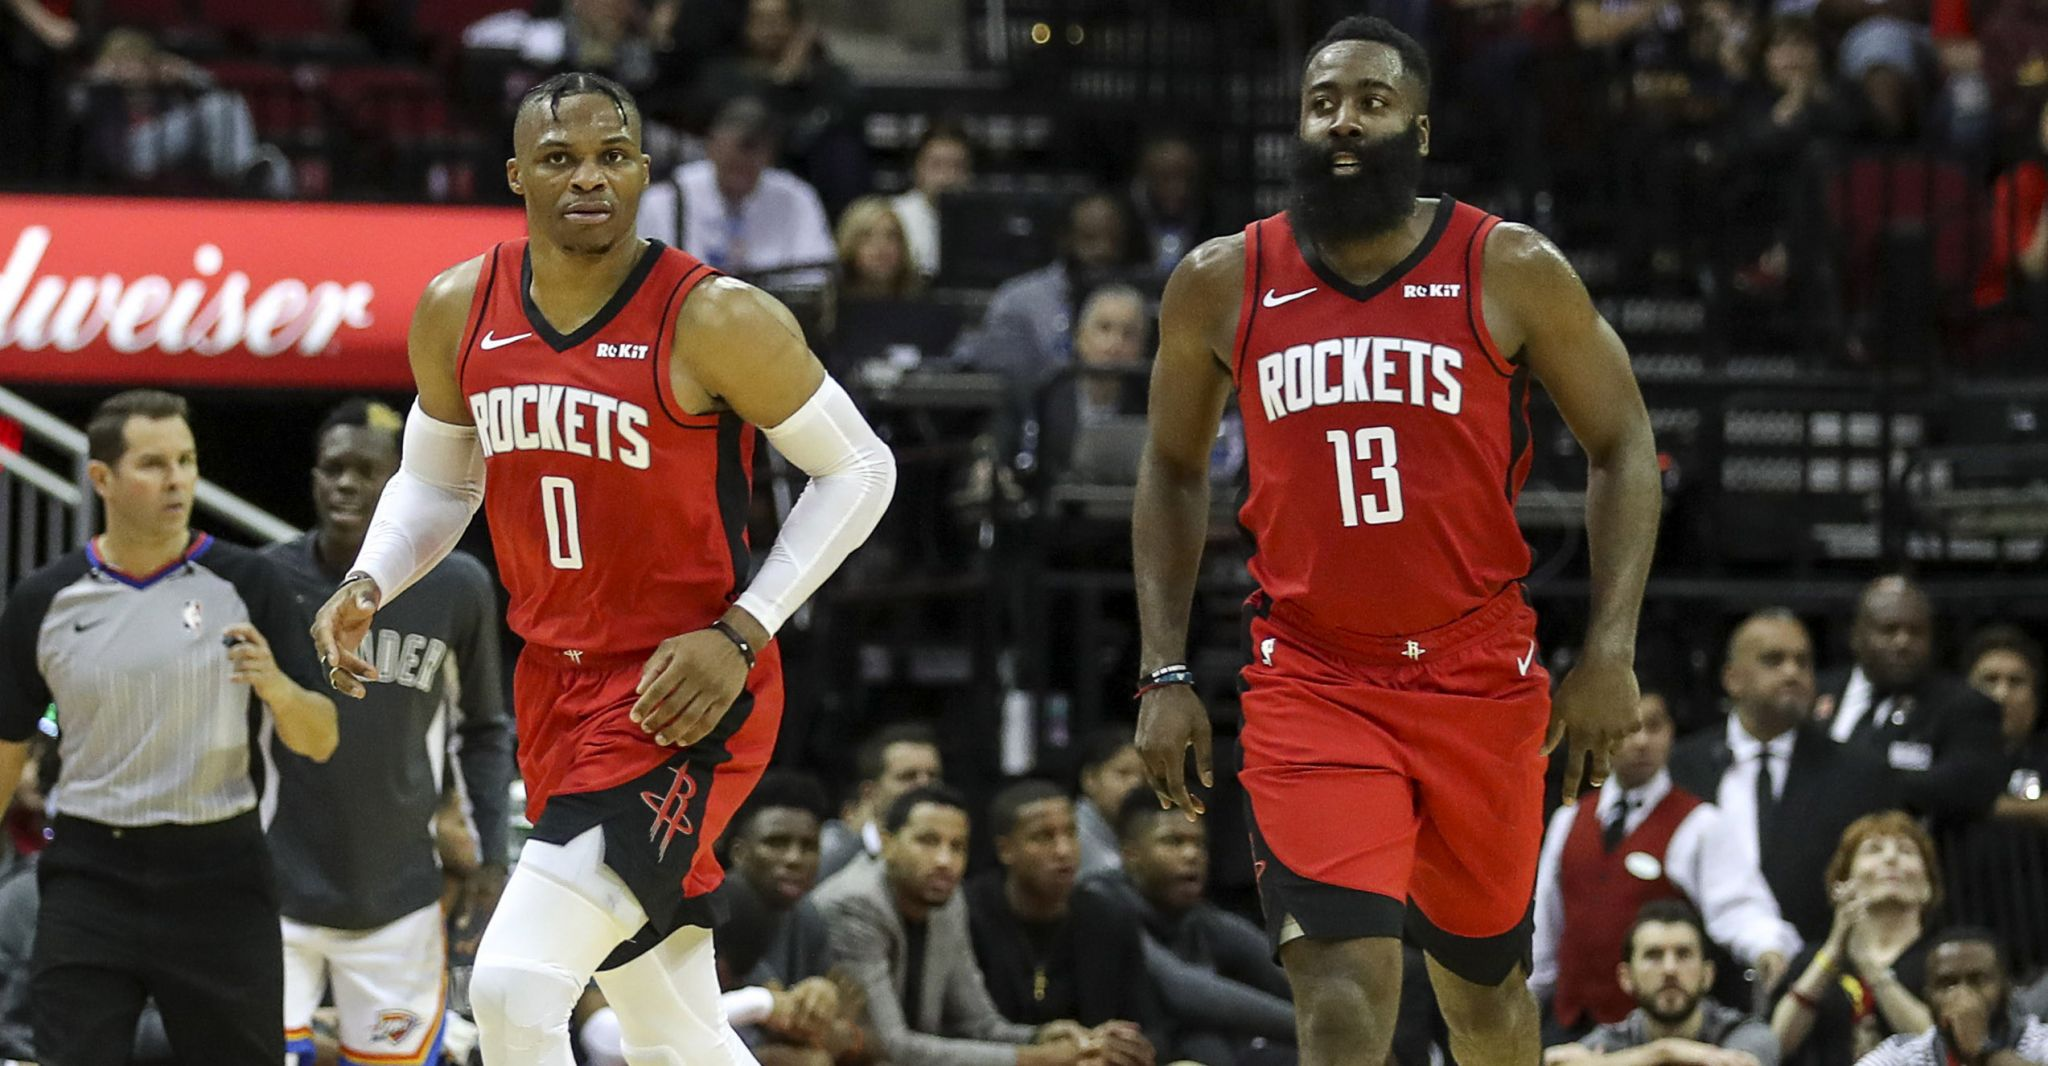 Pacers coach Nate McMillan: Russell Westbrook-James Harden combo 'will work'